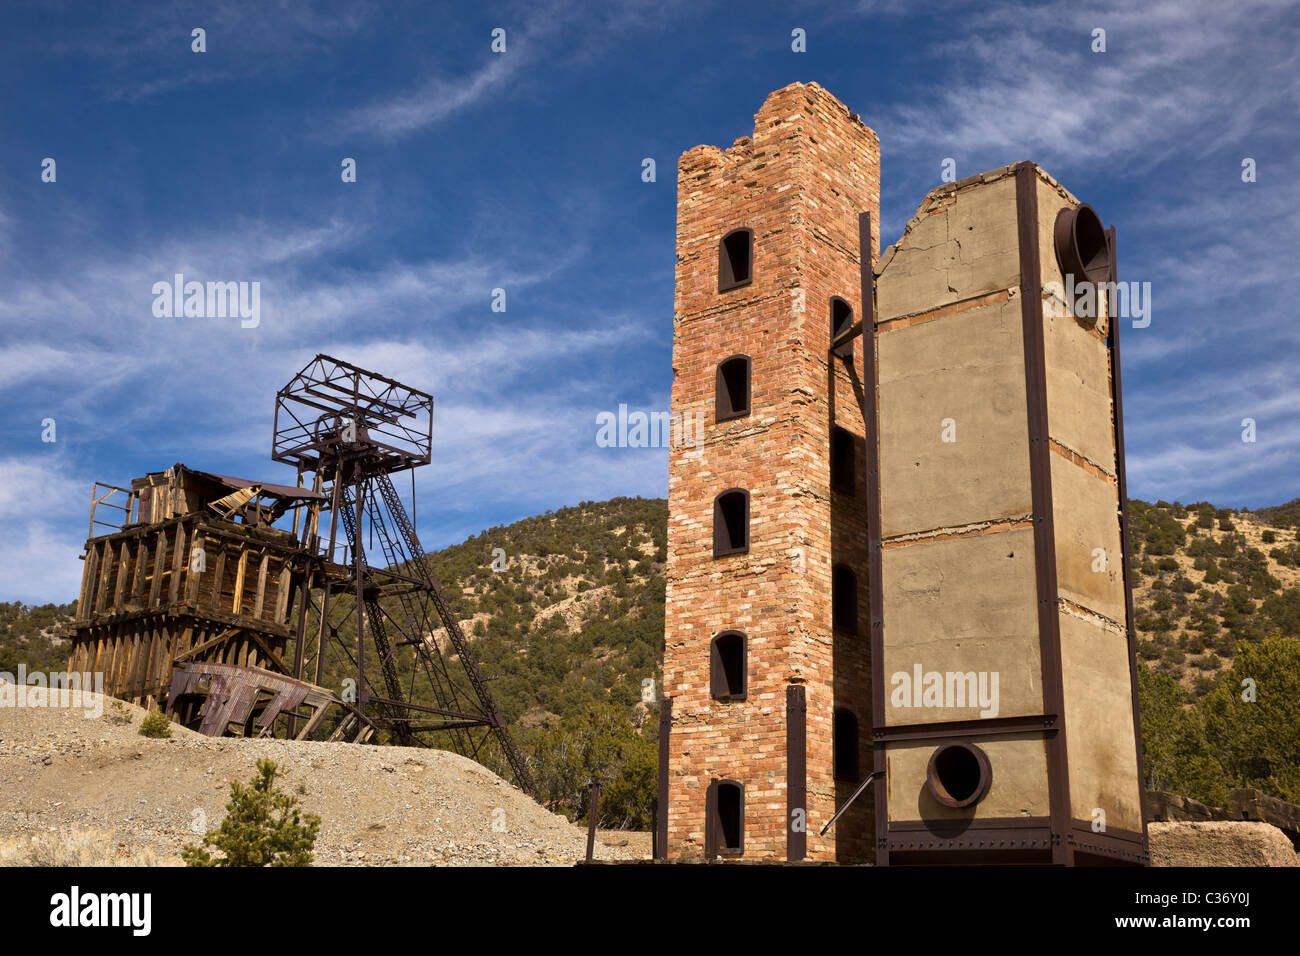 Taylor headframe and towering smelter oven at the Kelly Mine Ghost Town in Socorro County, New Mexico, USA. - Stock Image